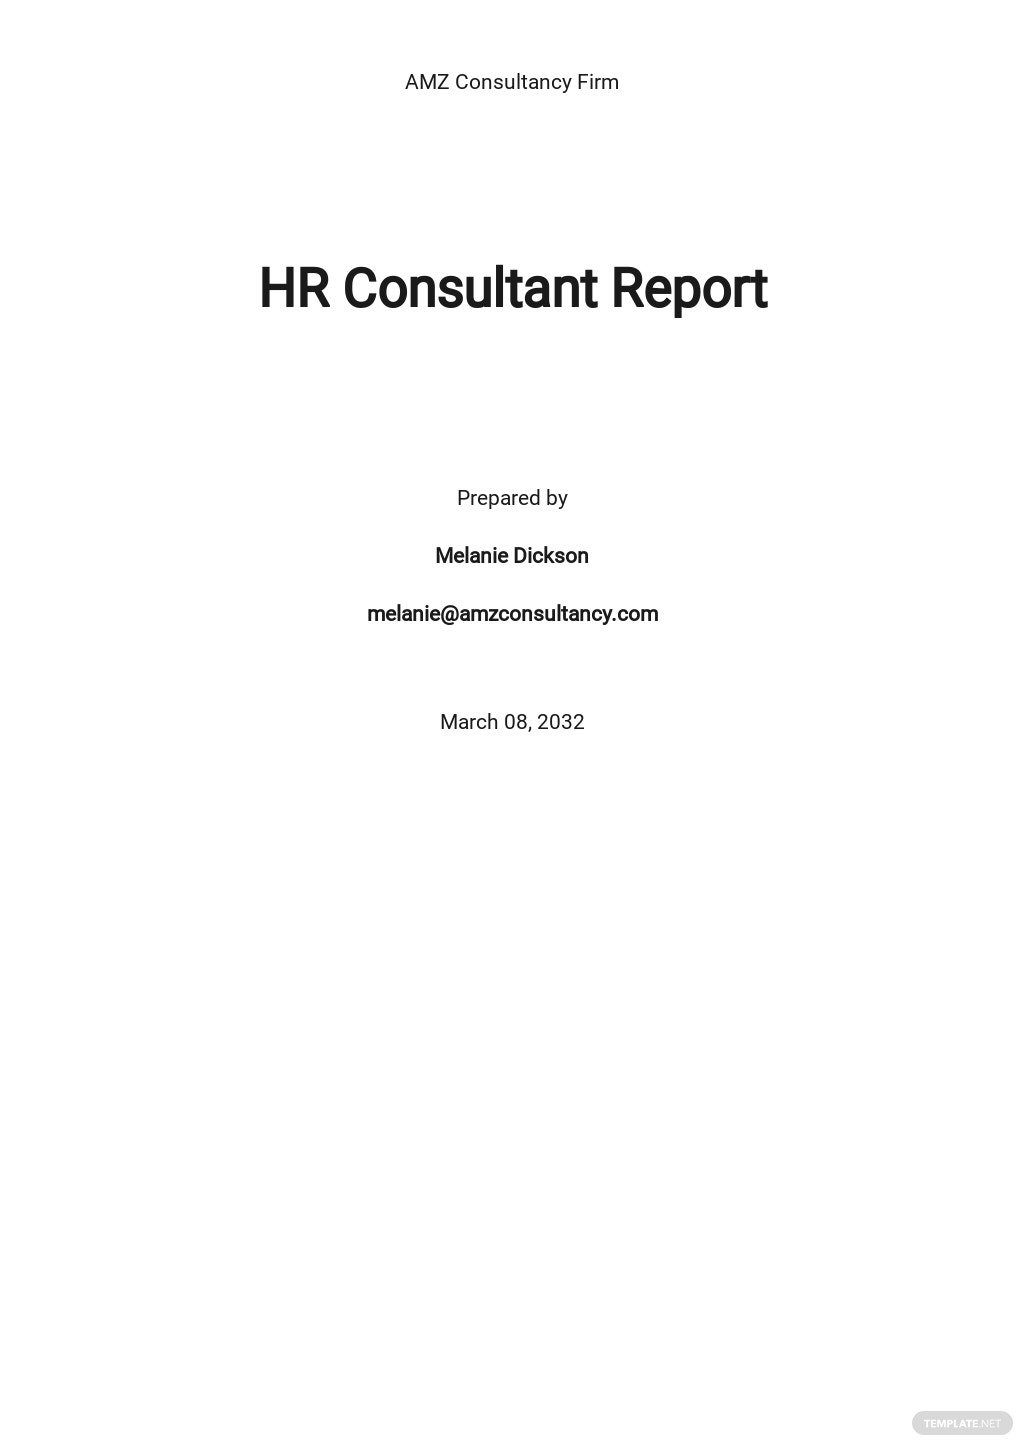 HR Consultant Report Template